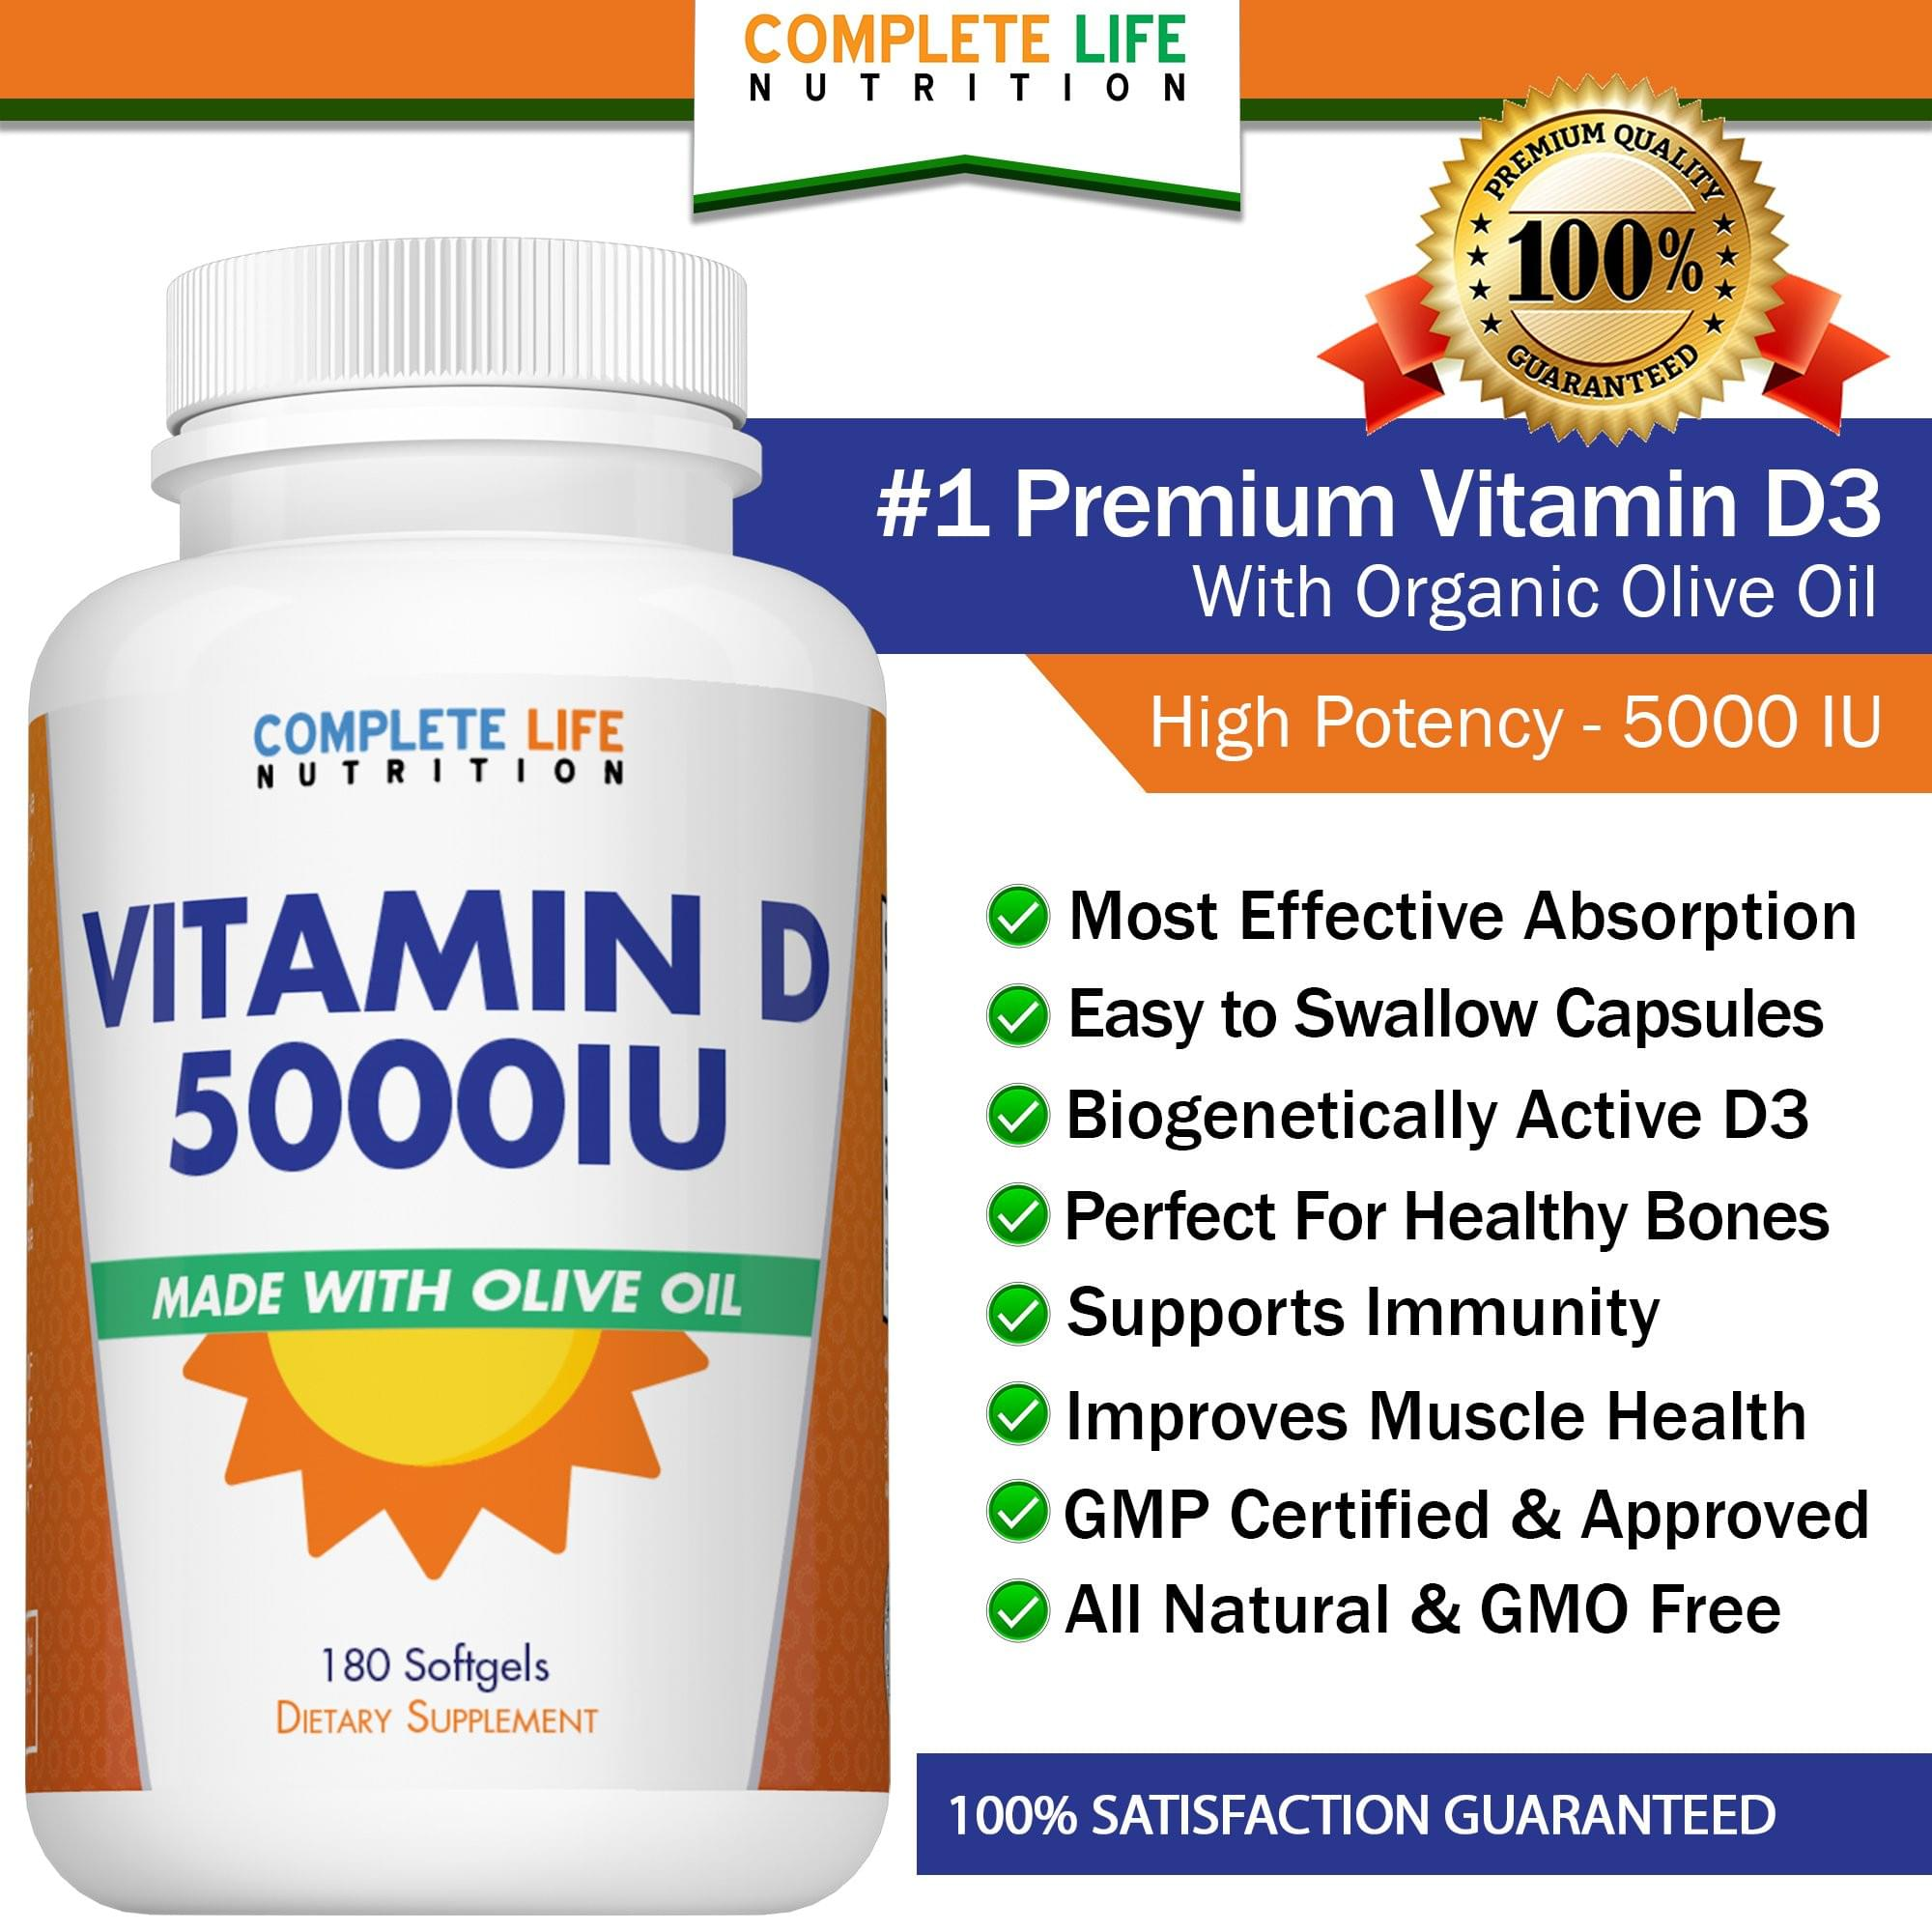 Organic Vitamin D3 5000 IU Supplement - High Absorption - Complete Life Nutrition - High Quality Doctor Formulated Vitamins and Supplements